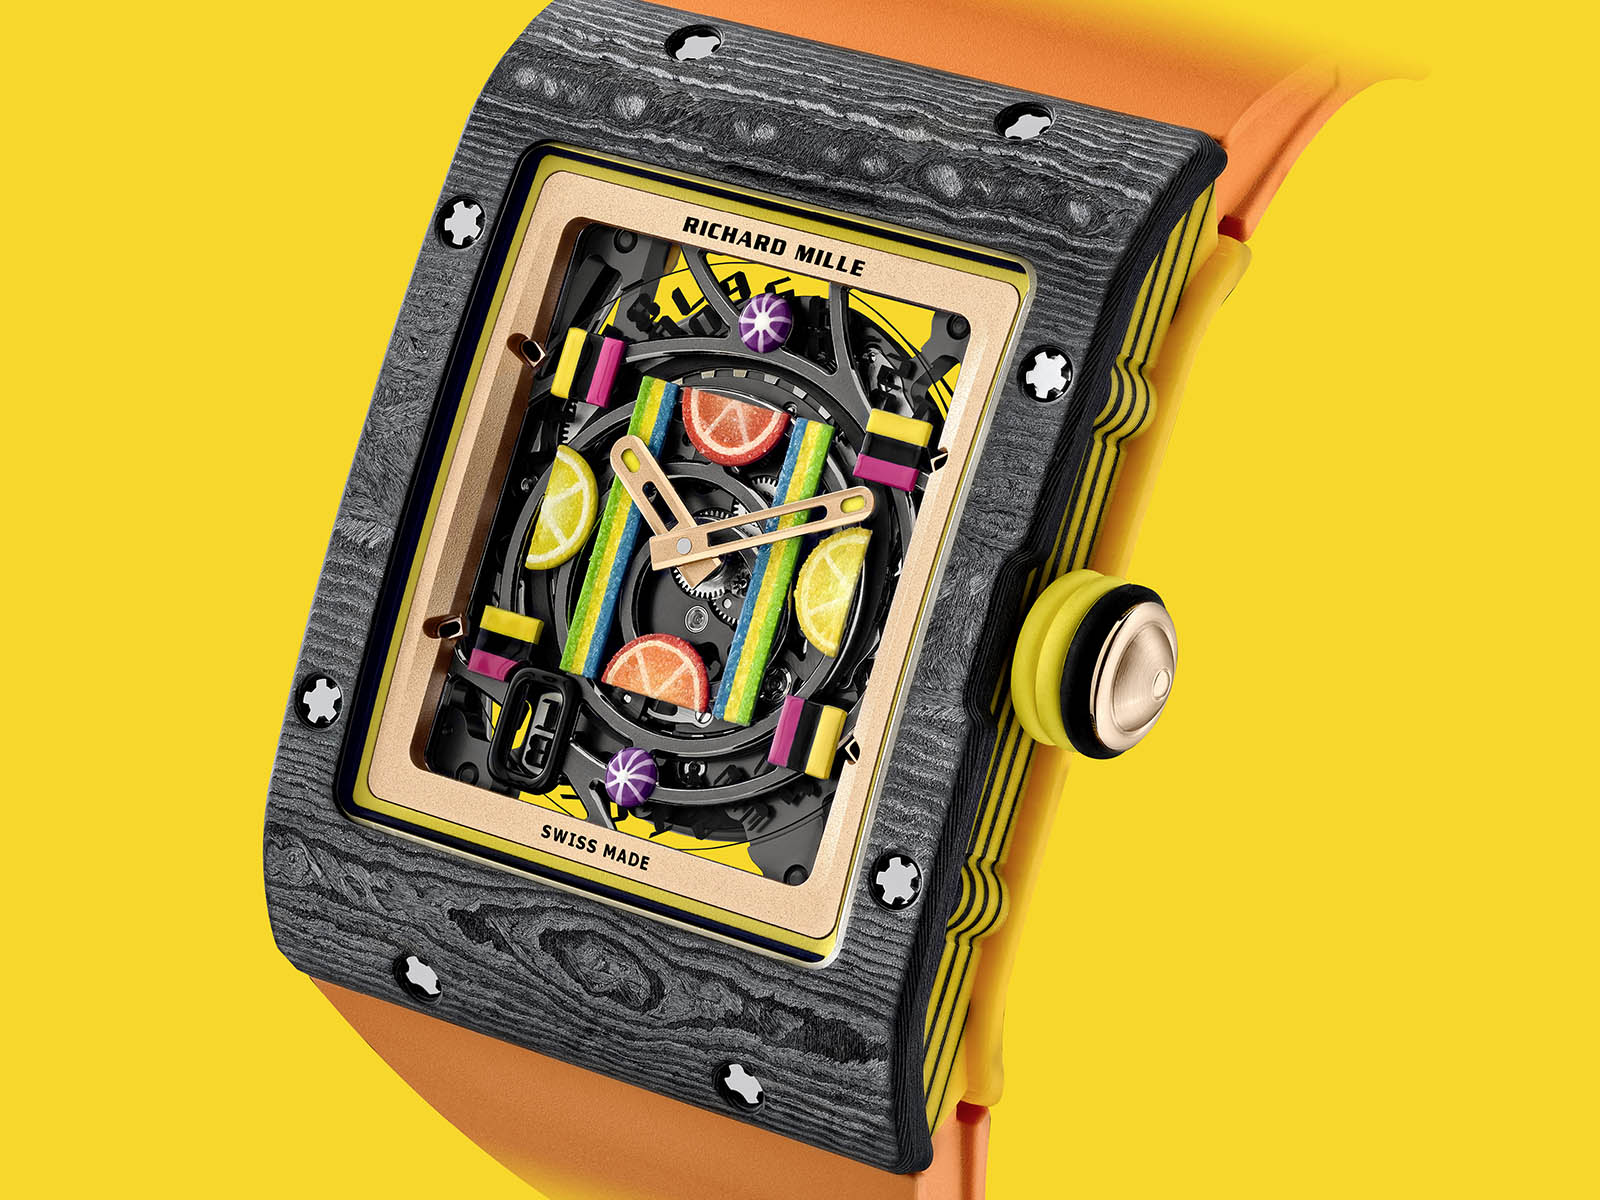 rm-16-01-richard-mille-automatic-citron.jpg